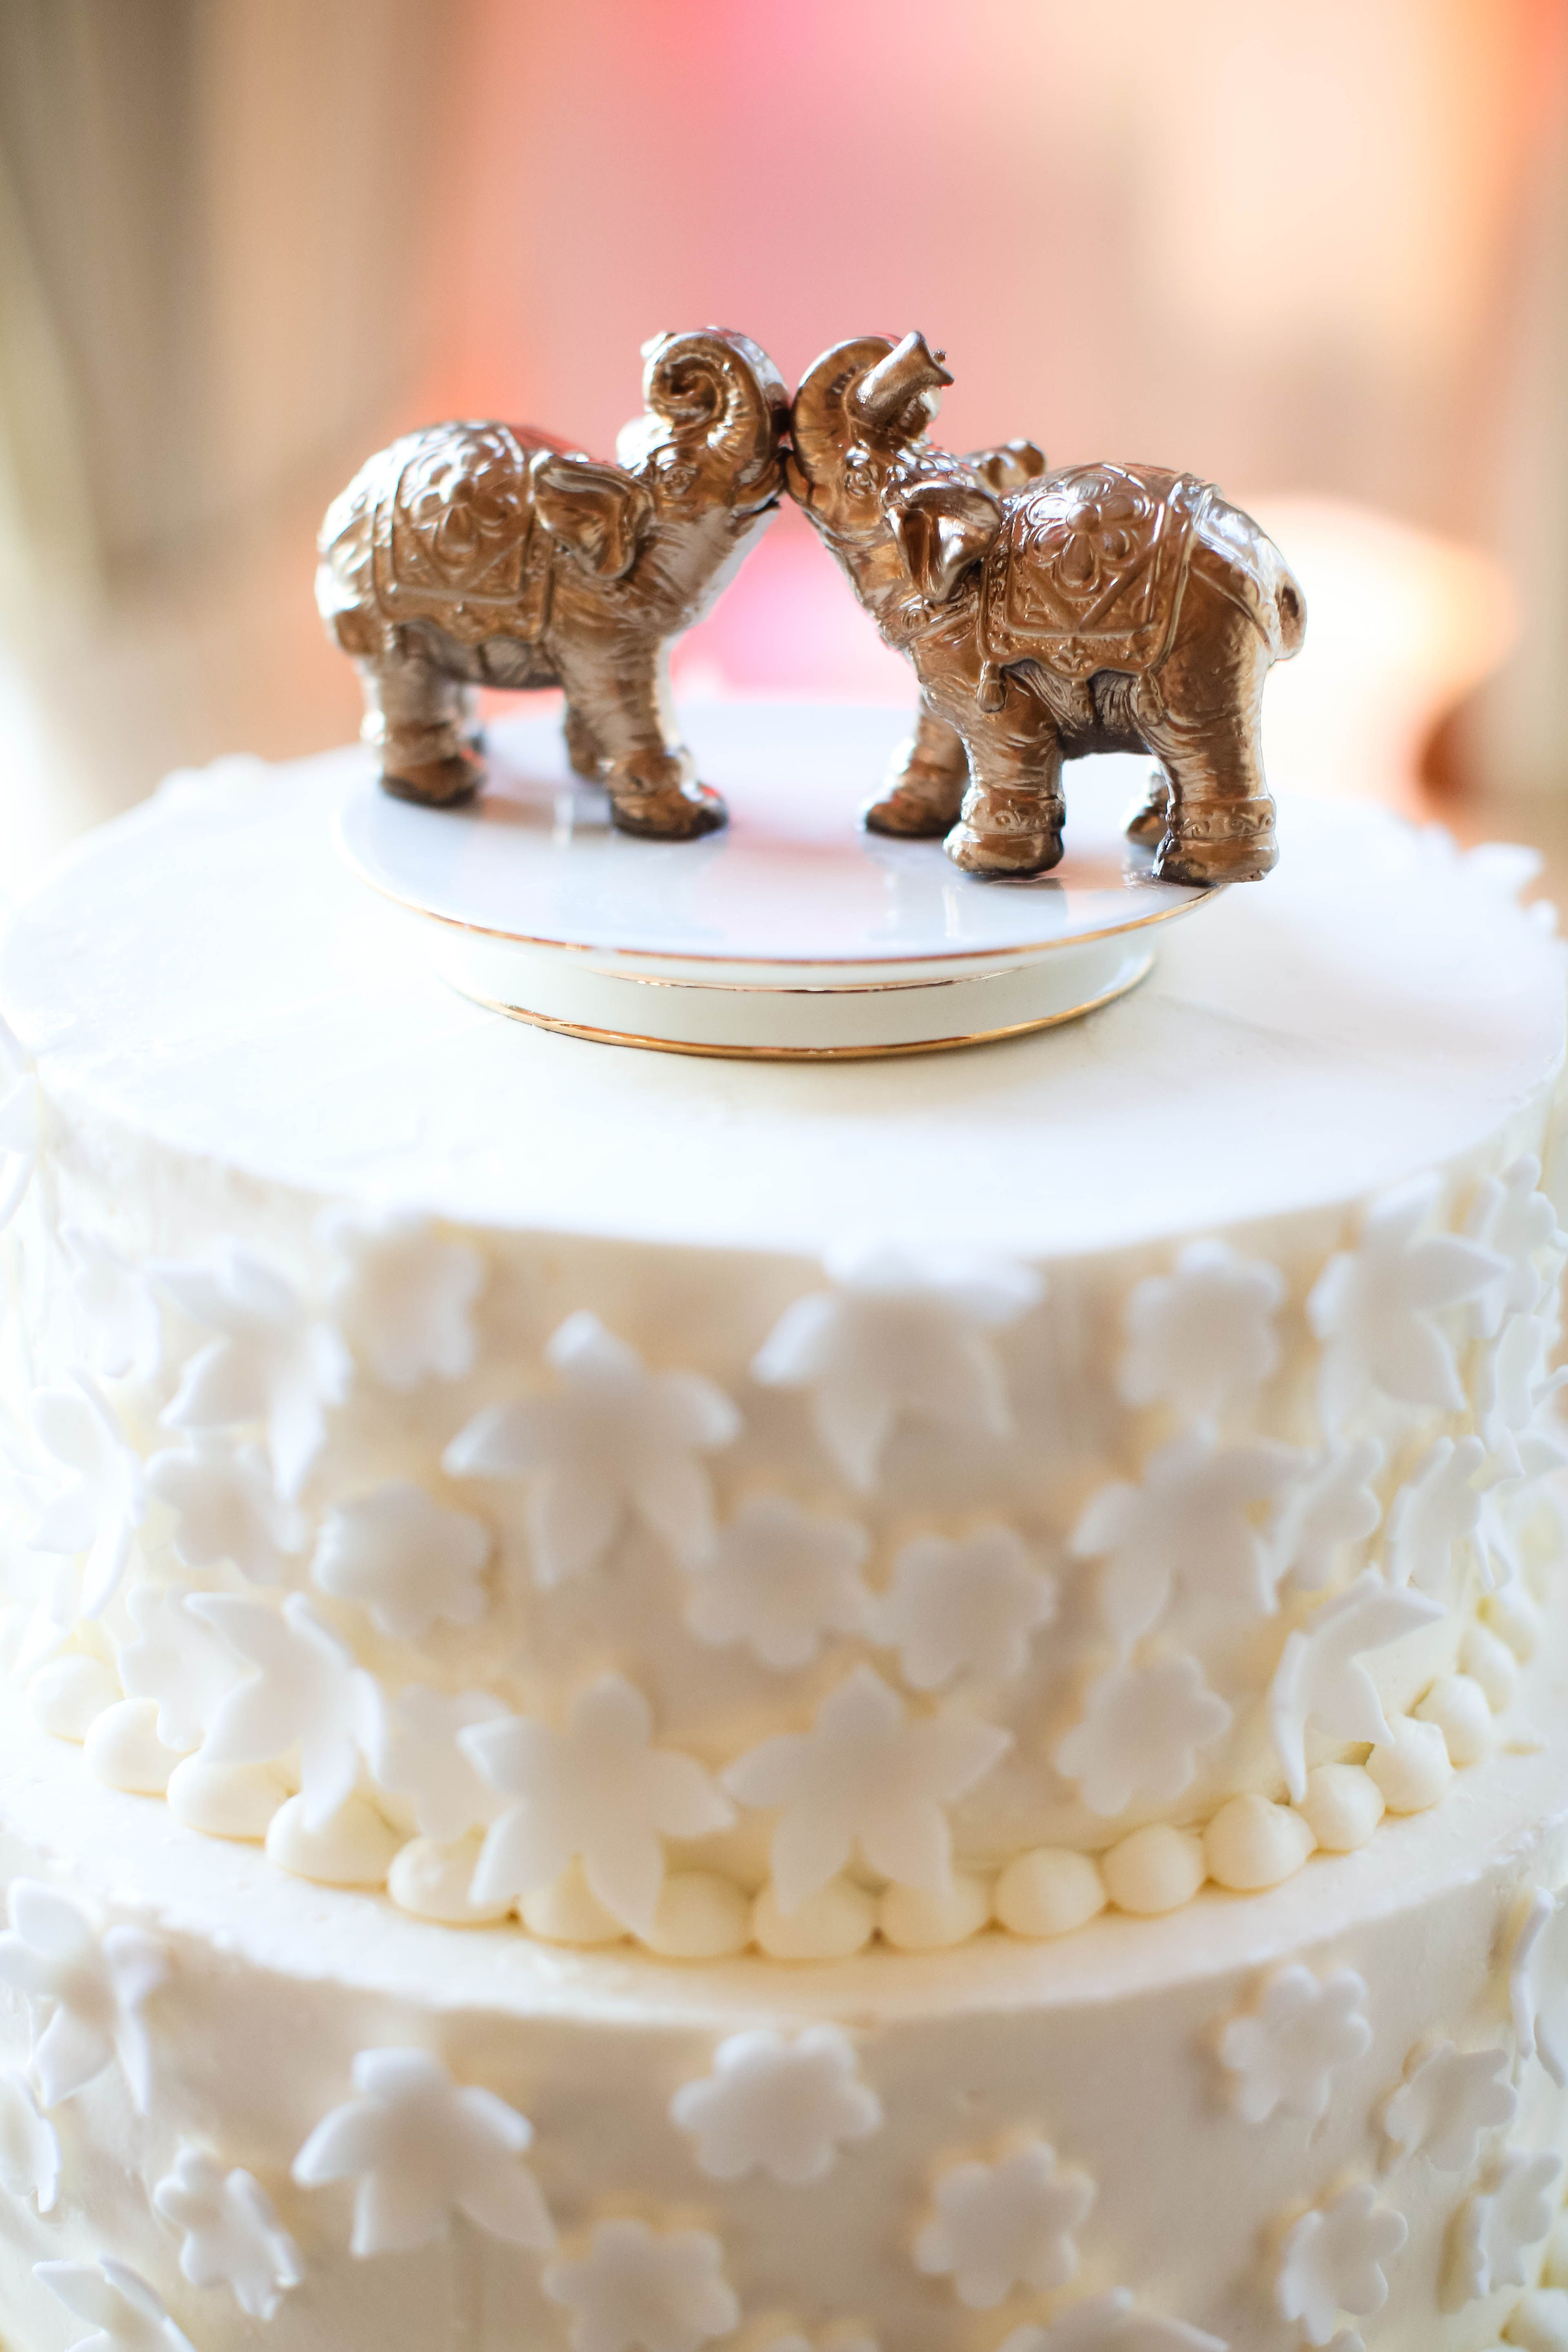 Elefant Cake Topper *KAY ENGLISH PHOTOGRAPHY* TheKnot